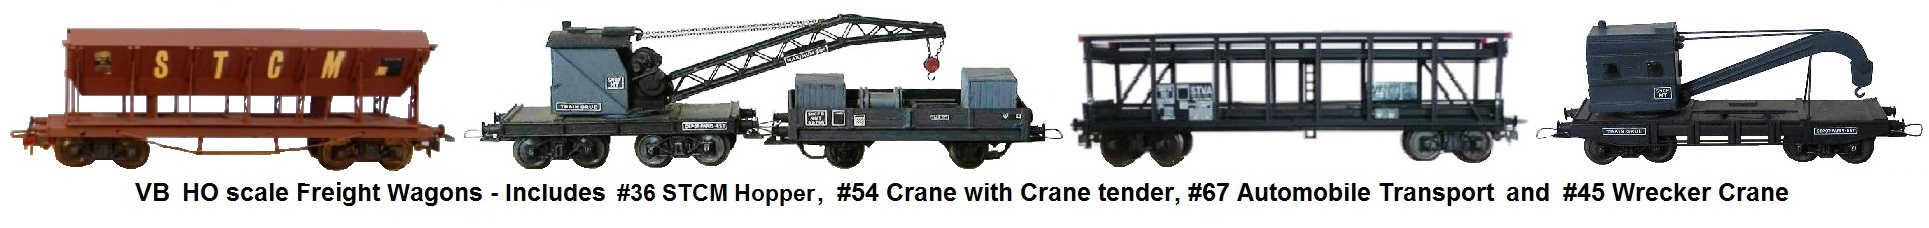 VB HO scale Freight Wagons, includes #36 STCM Hopper, #54 Crane with Tender, #67 Auto Transport, and #45 Wrecker